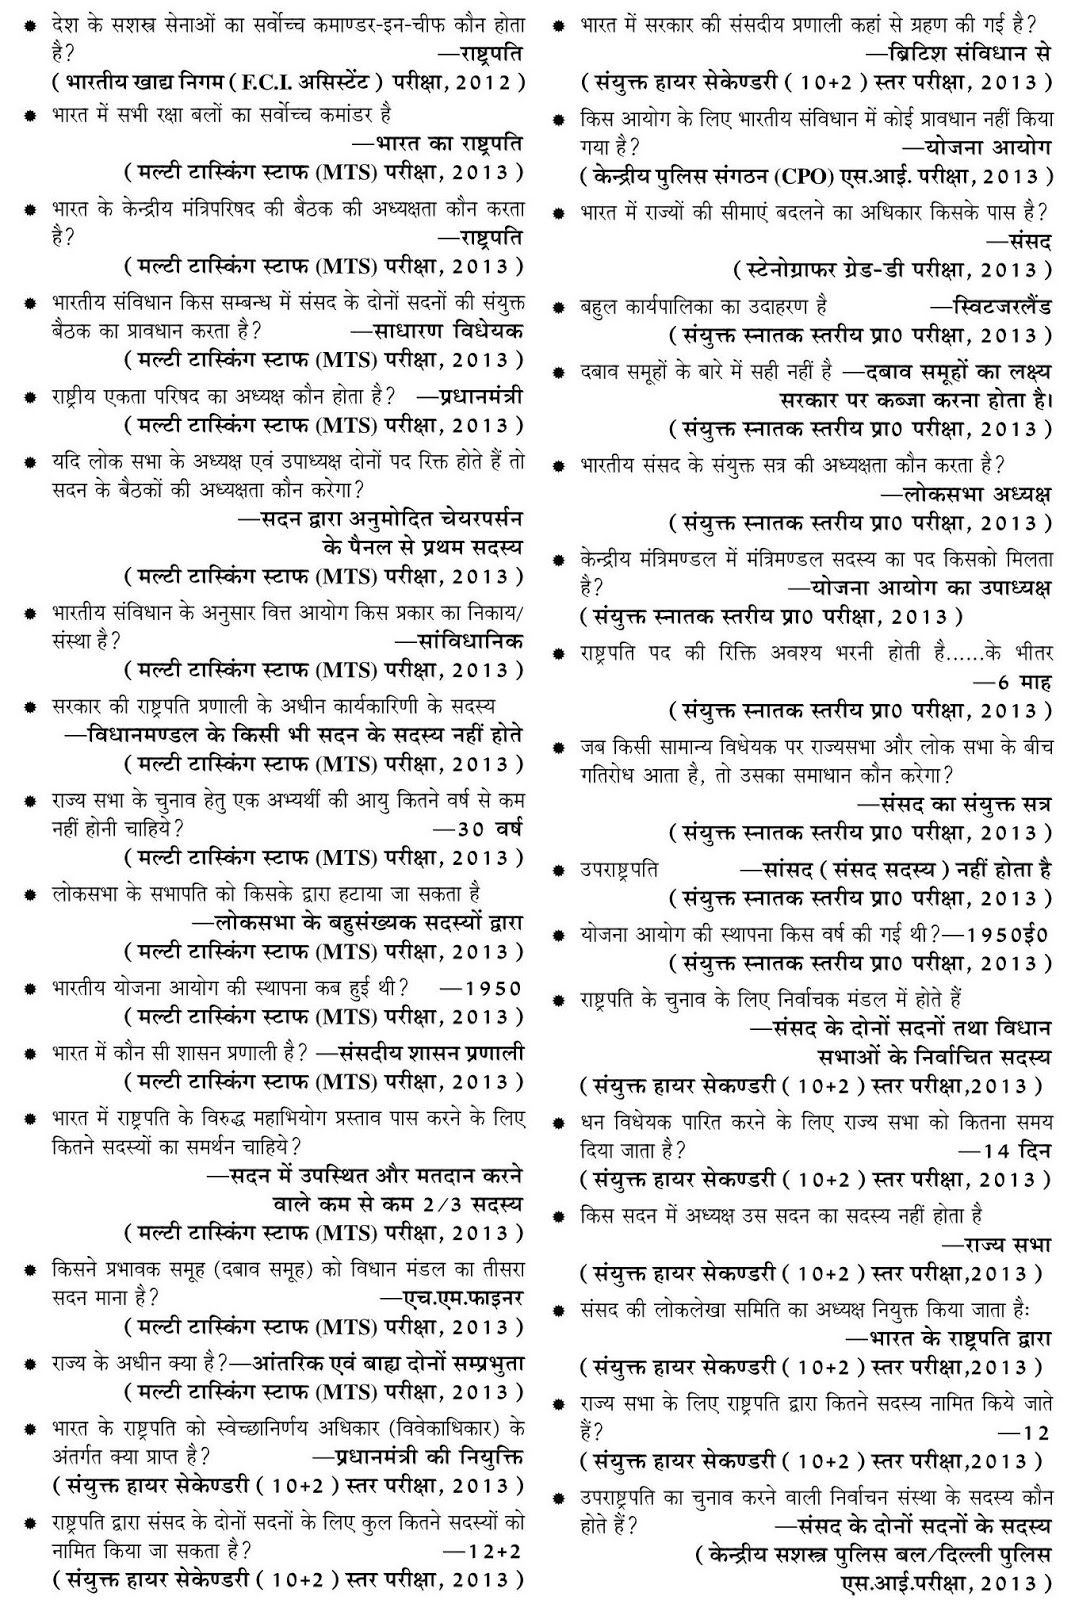 INDIAN CONSTITUTIONGENERAL KNOWLEDGE QUESTIONS AND